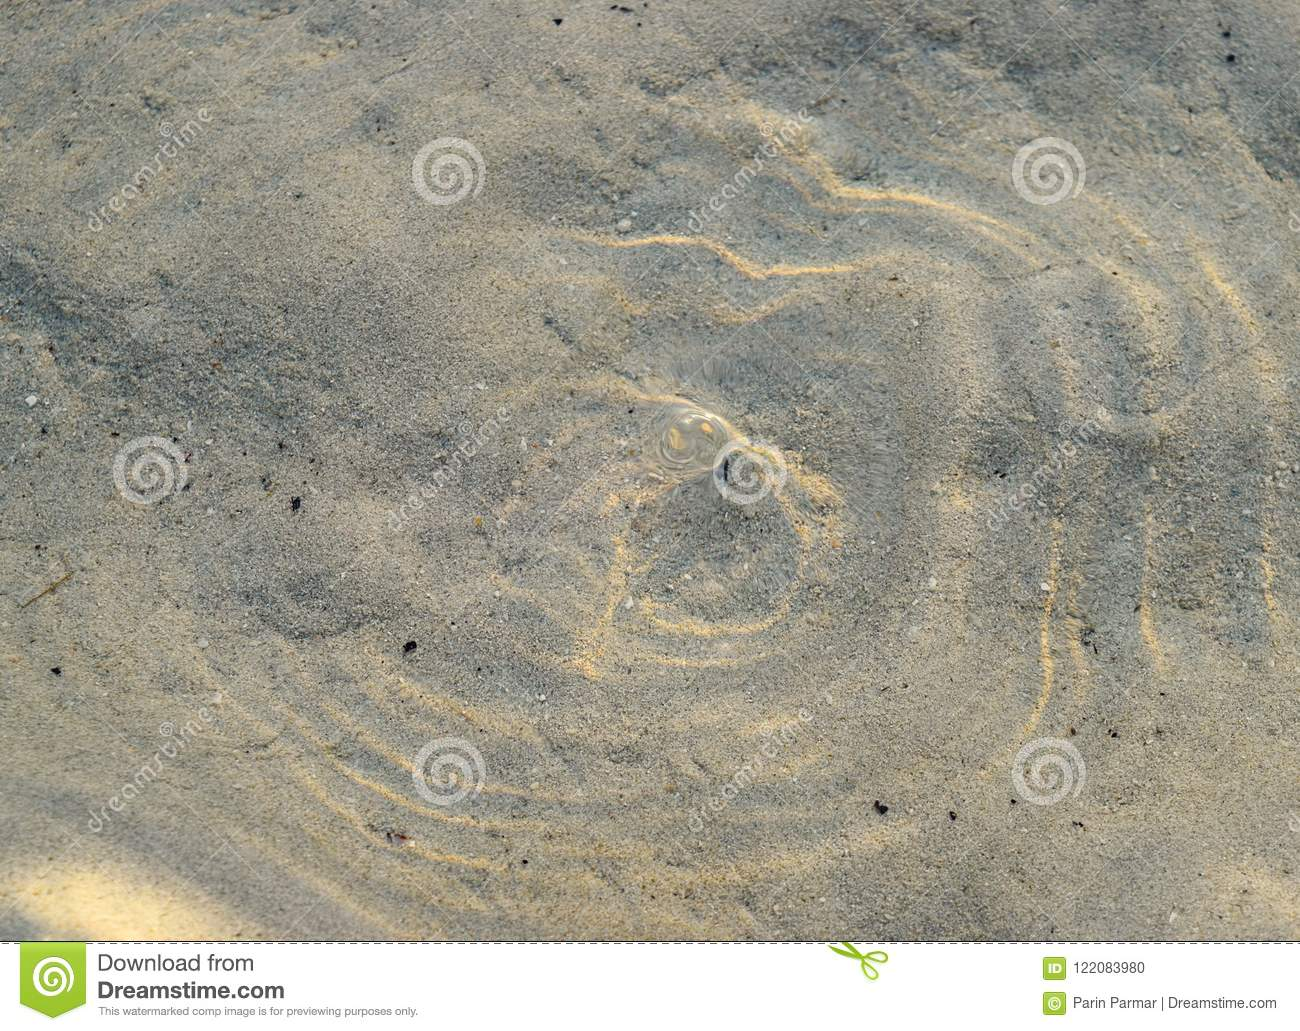 Waves on Water Surface with Underwater Sand - Abstract Texture Natural Background